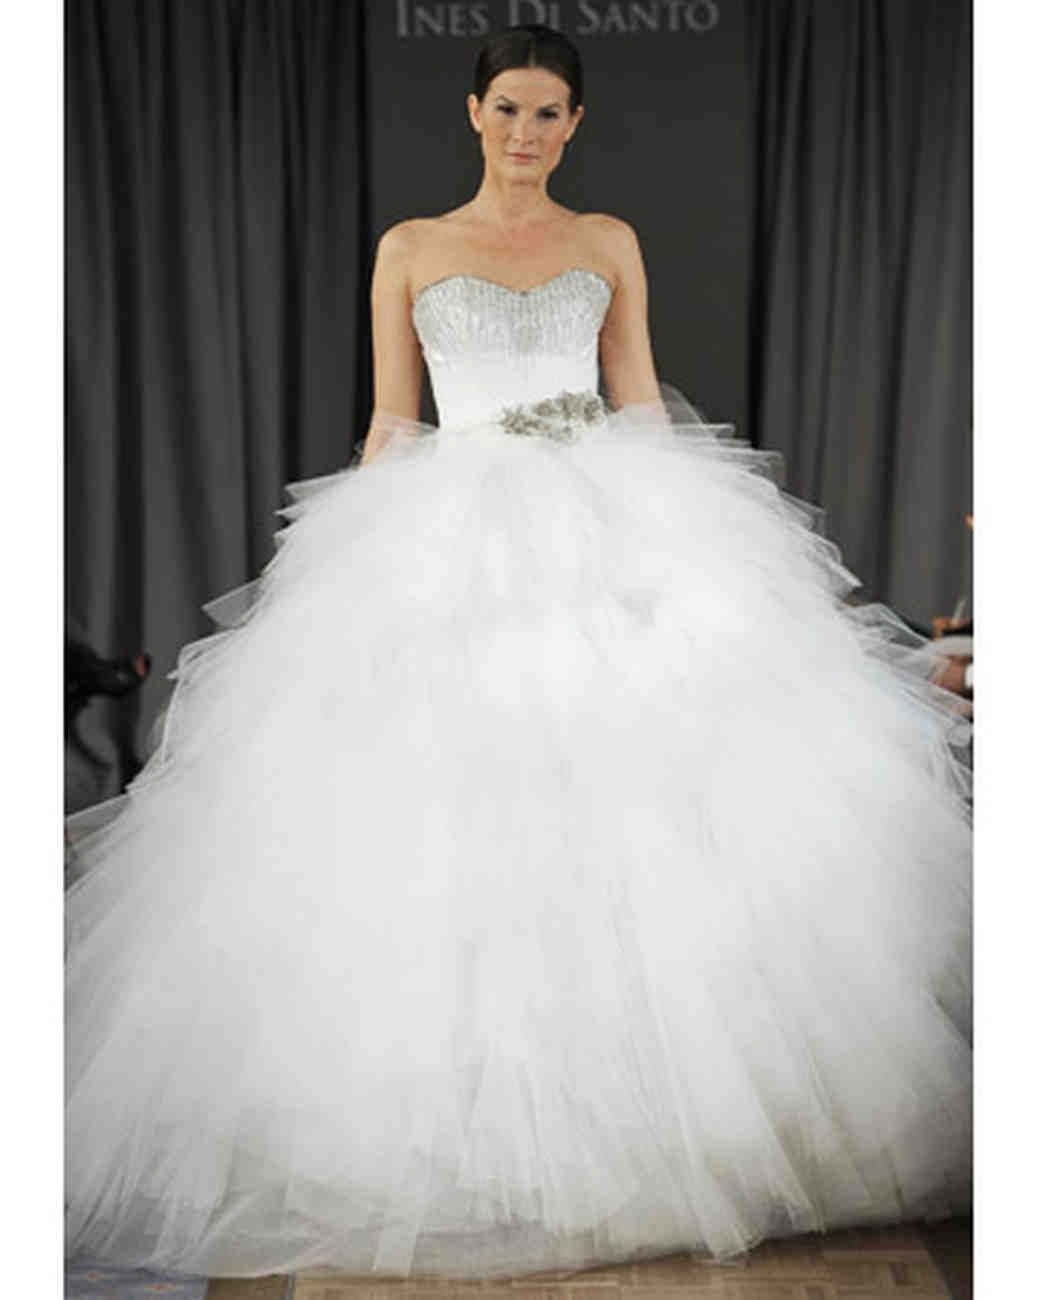 Princess Ball Gowns For Wedding: Tulle Princess Ball Gowns From Spring 2012 Bridal Fashion